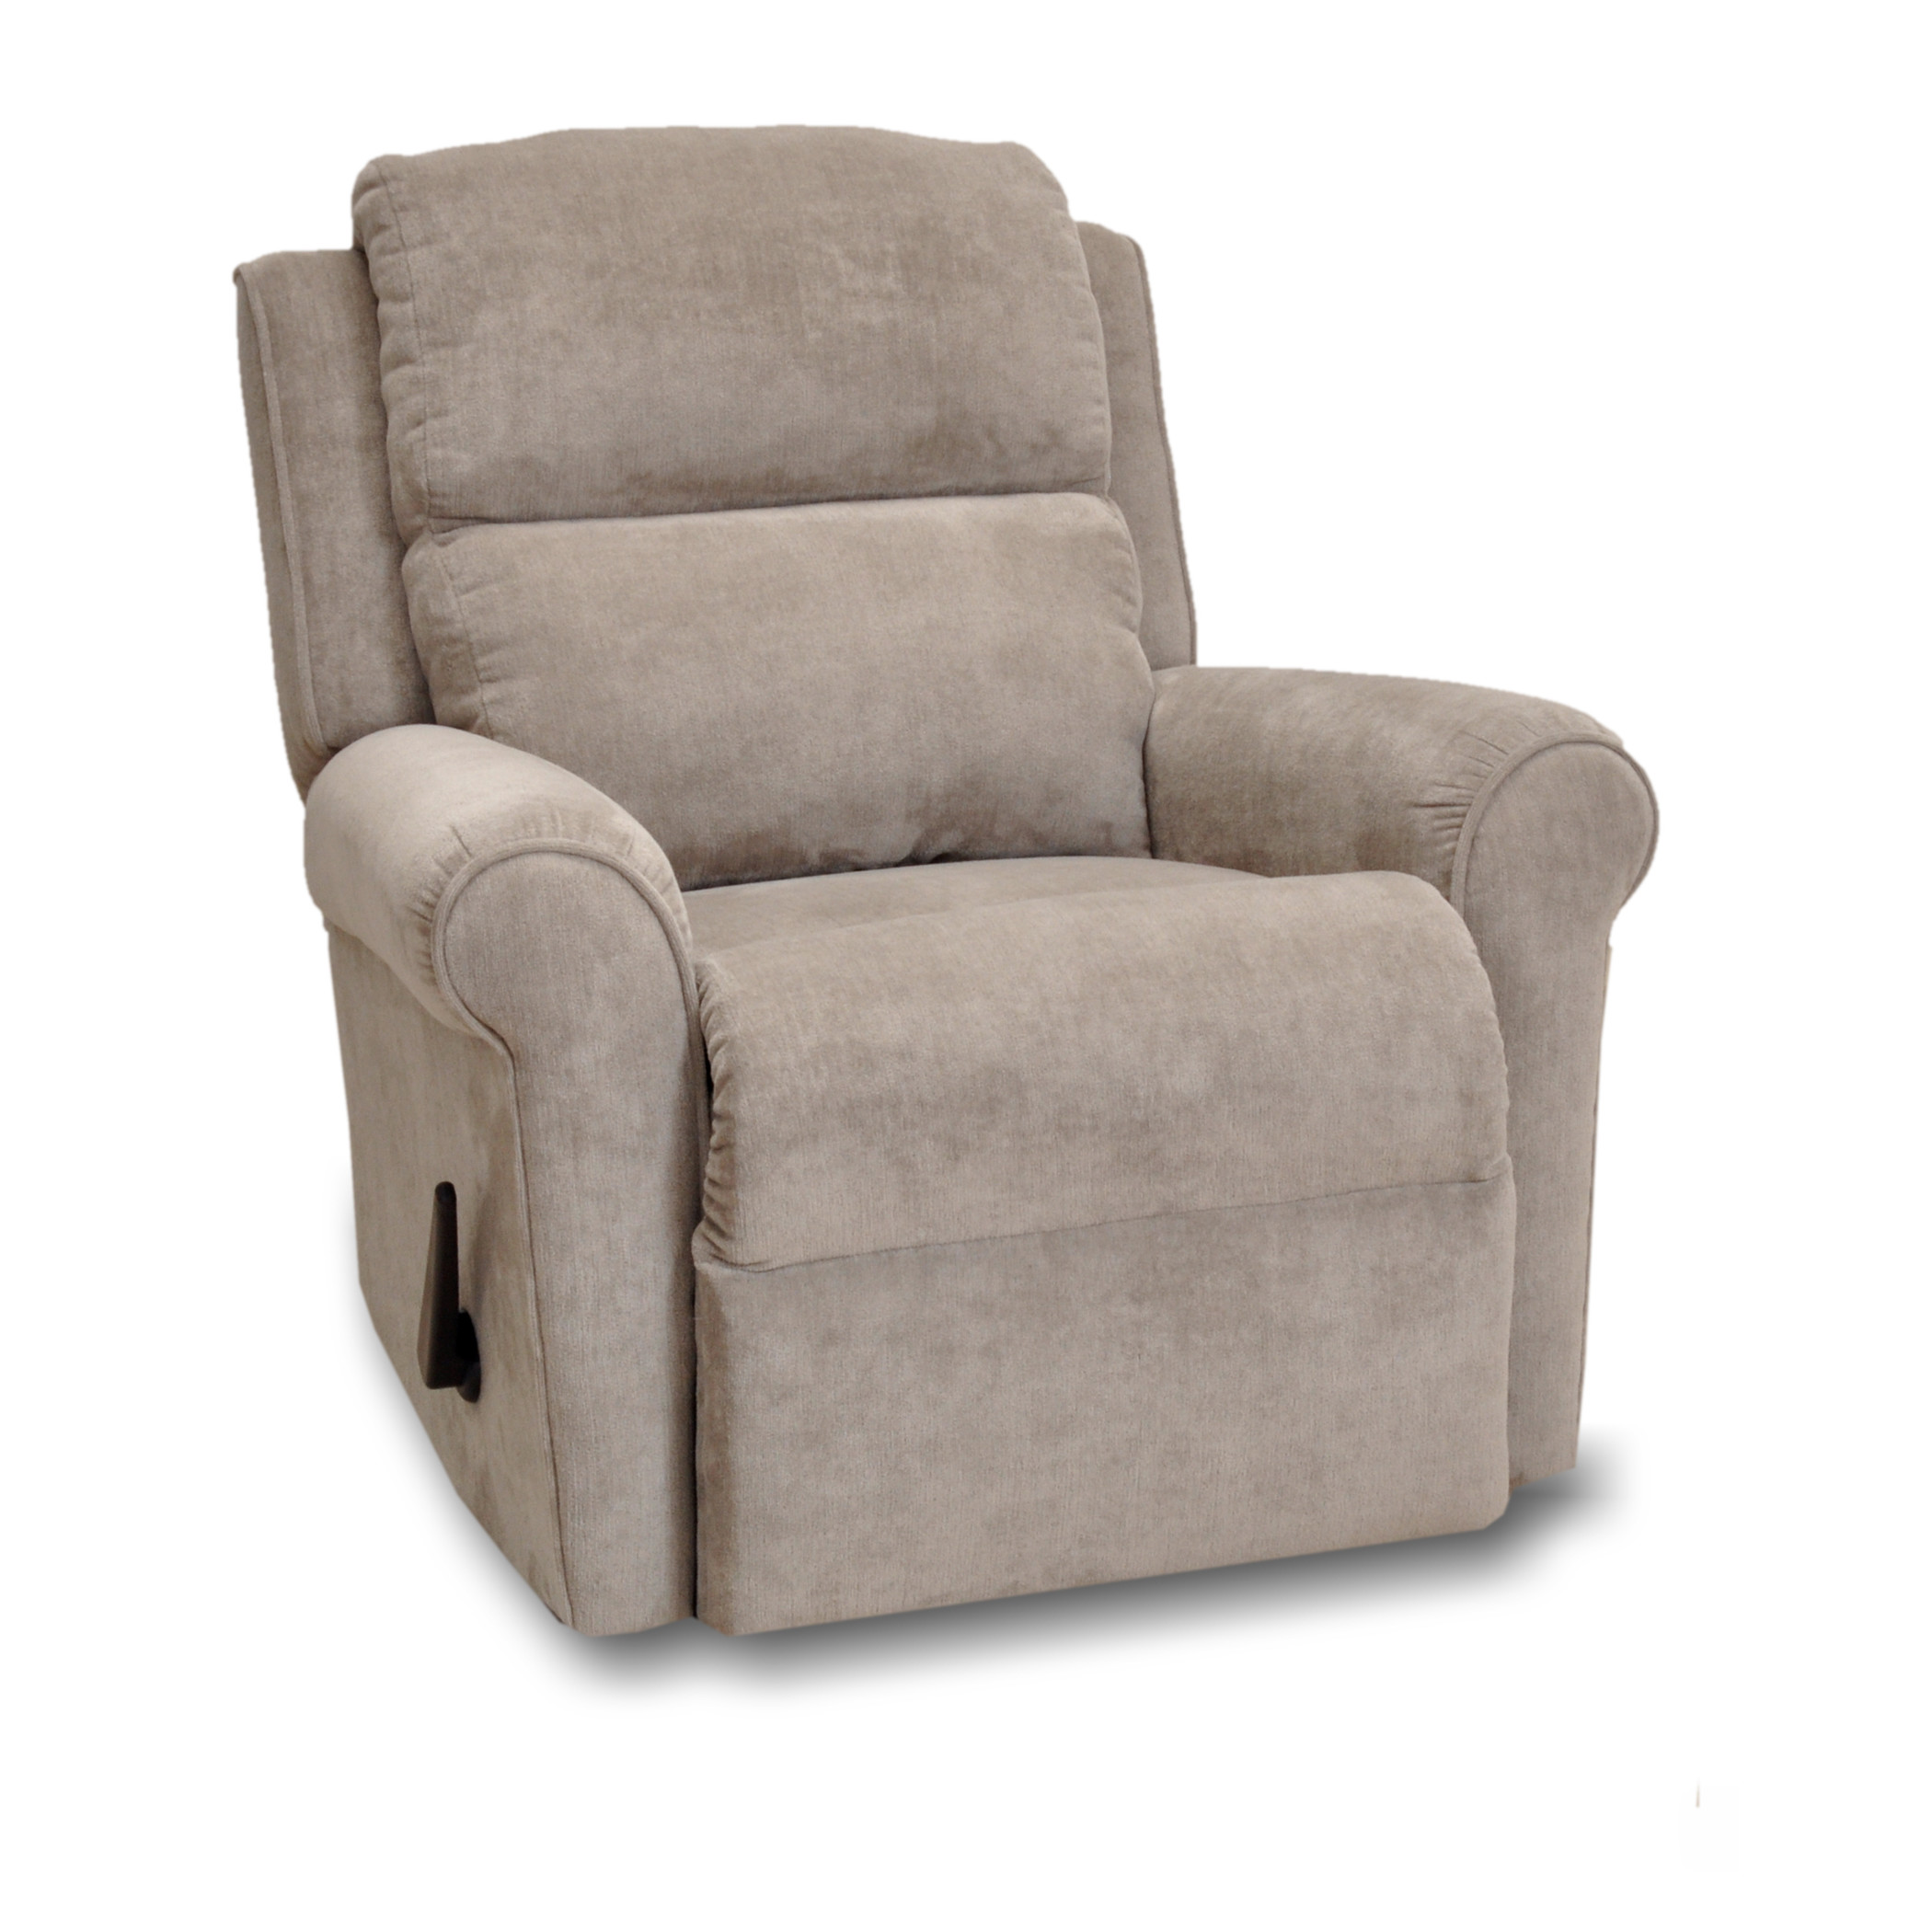 Recliner Covers | Parsons Chair Slipcovers | Recliner Slip Cover